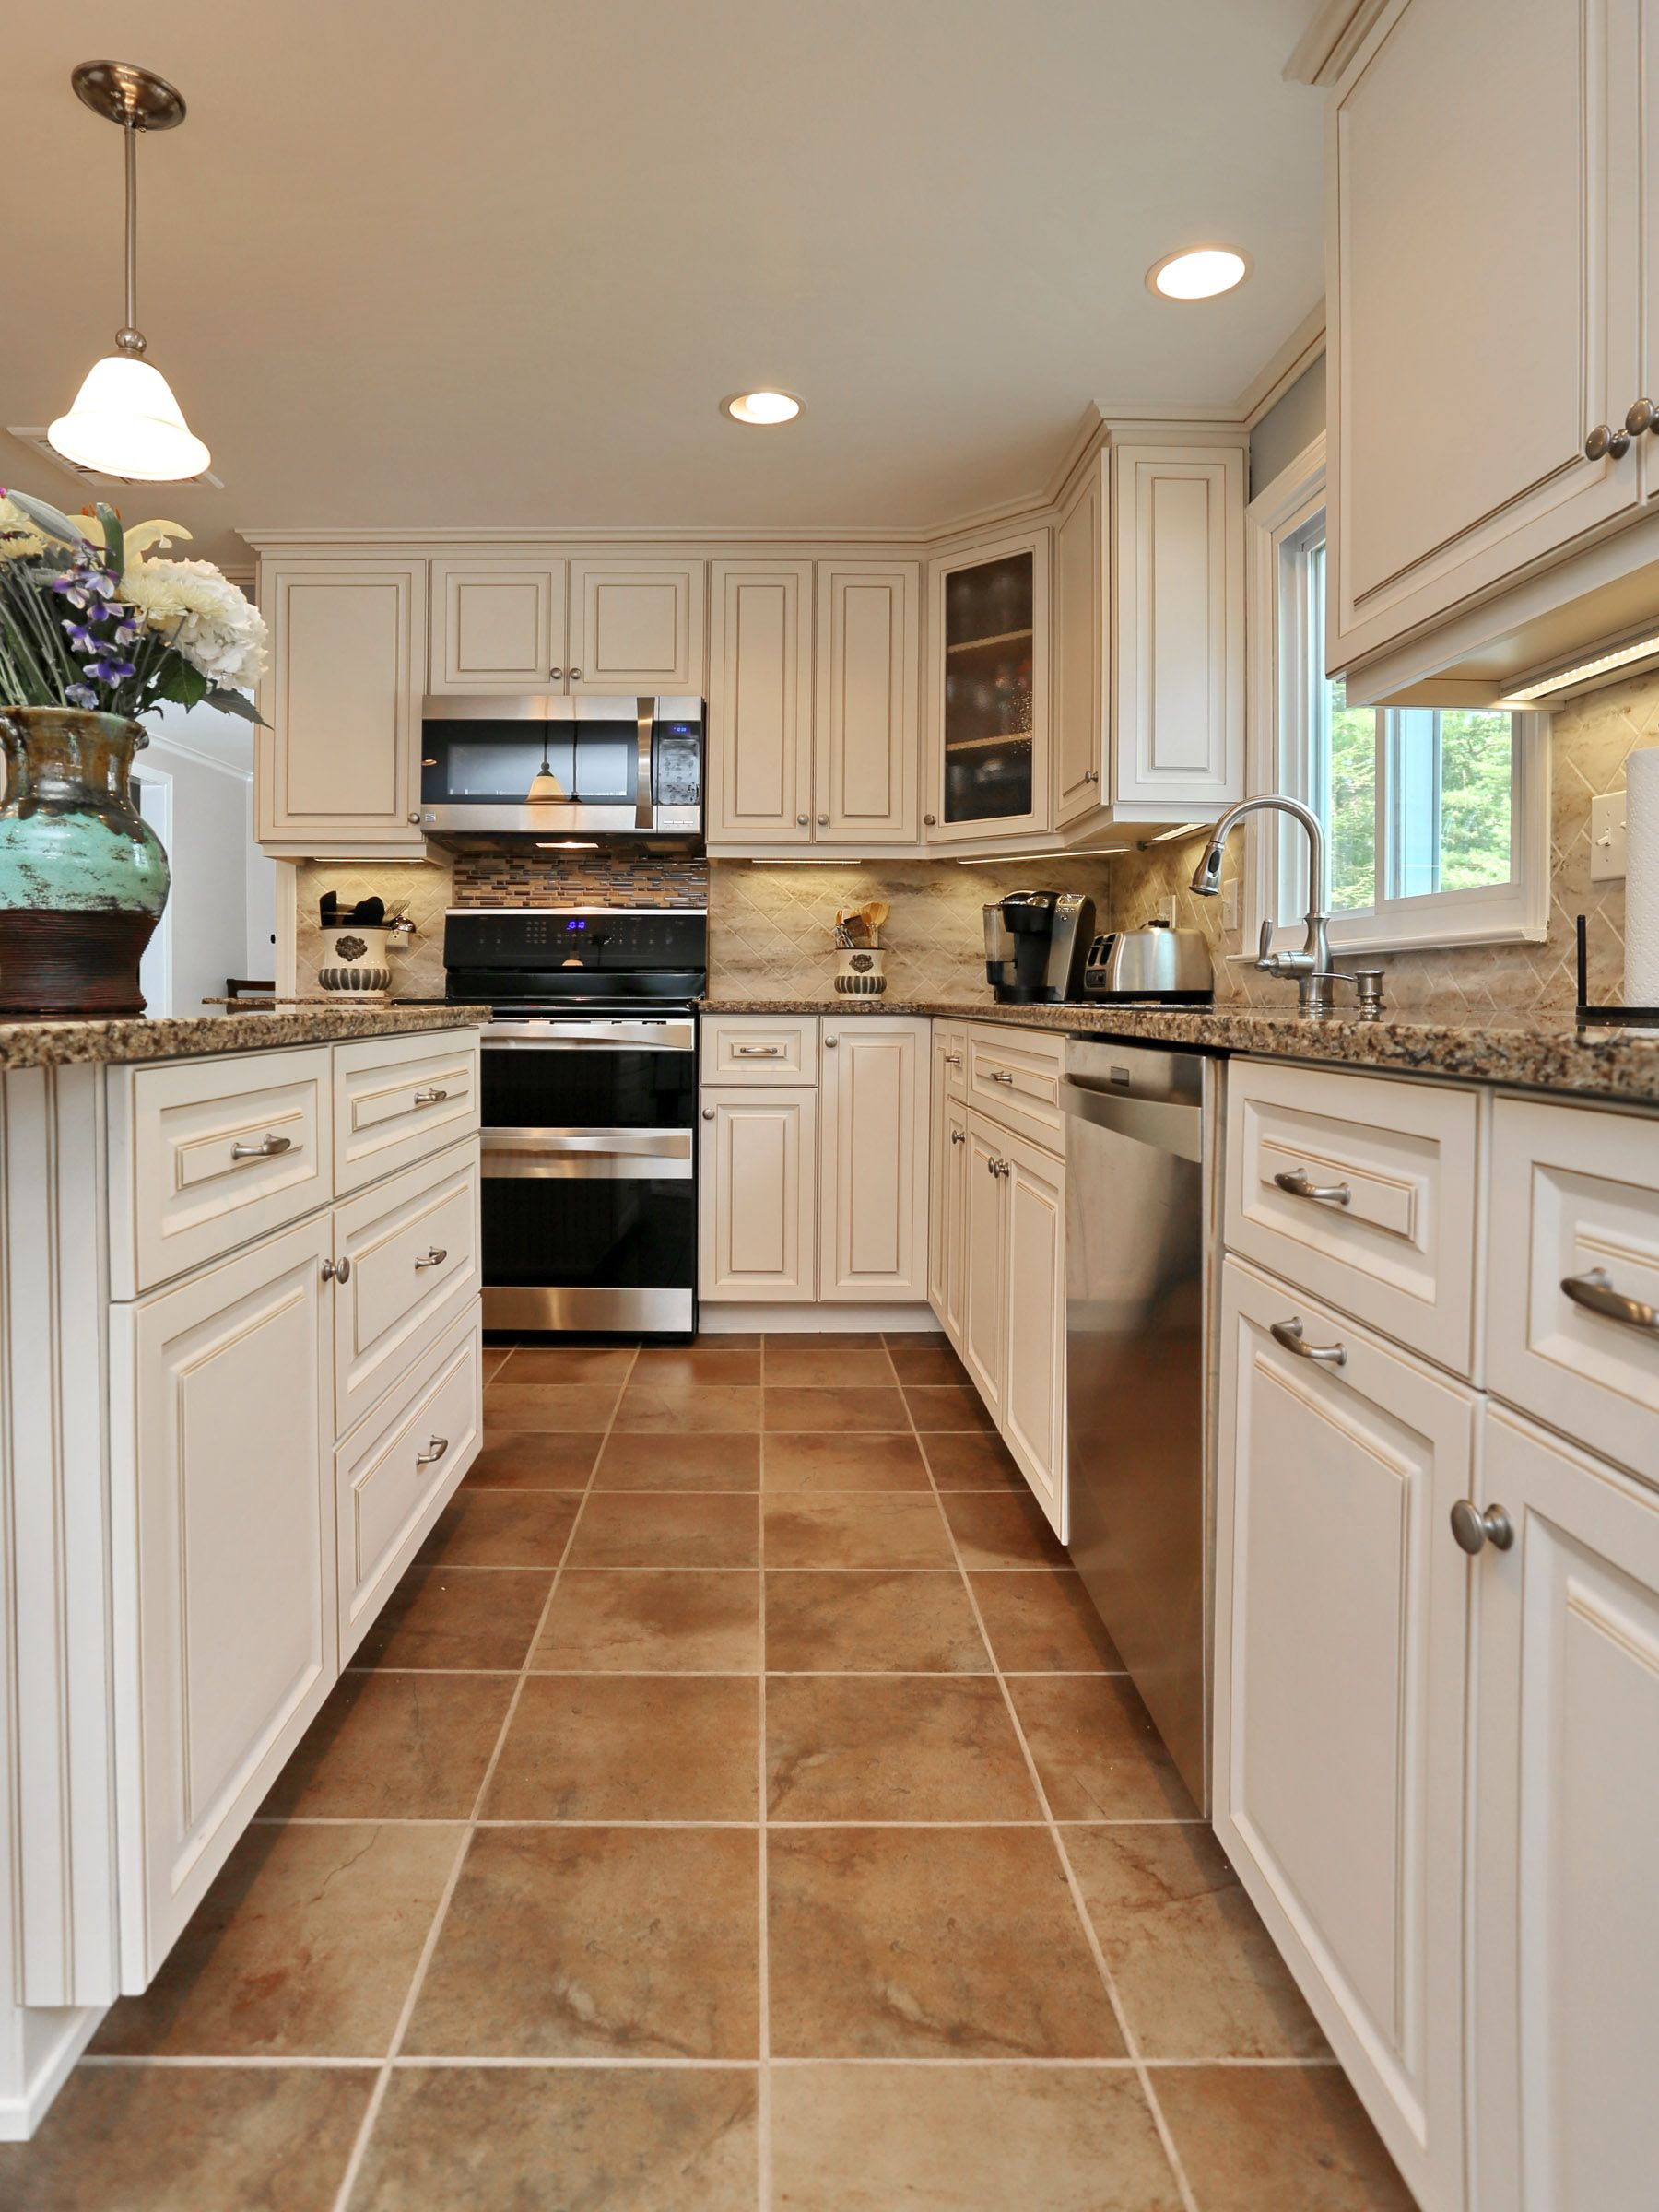 Tile Floors For Kitchen Have You Ever Seen A Canterbury Kitchen Beautiful The Floor